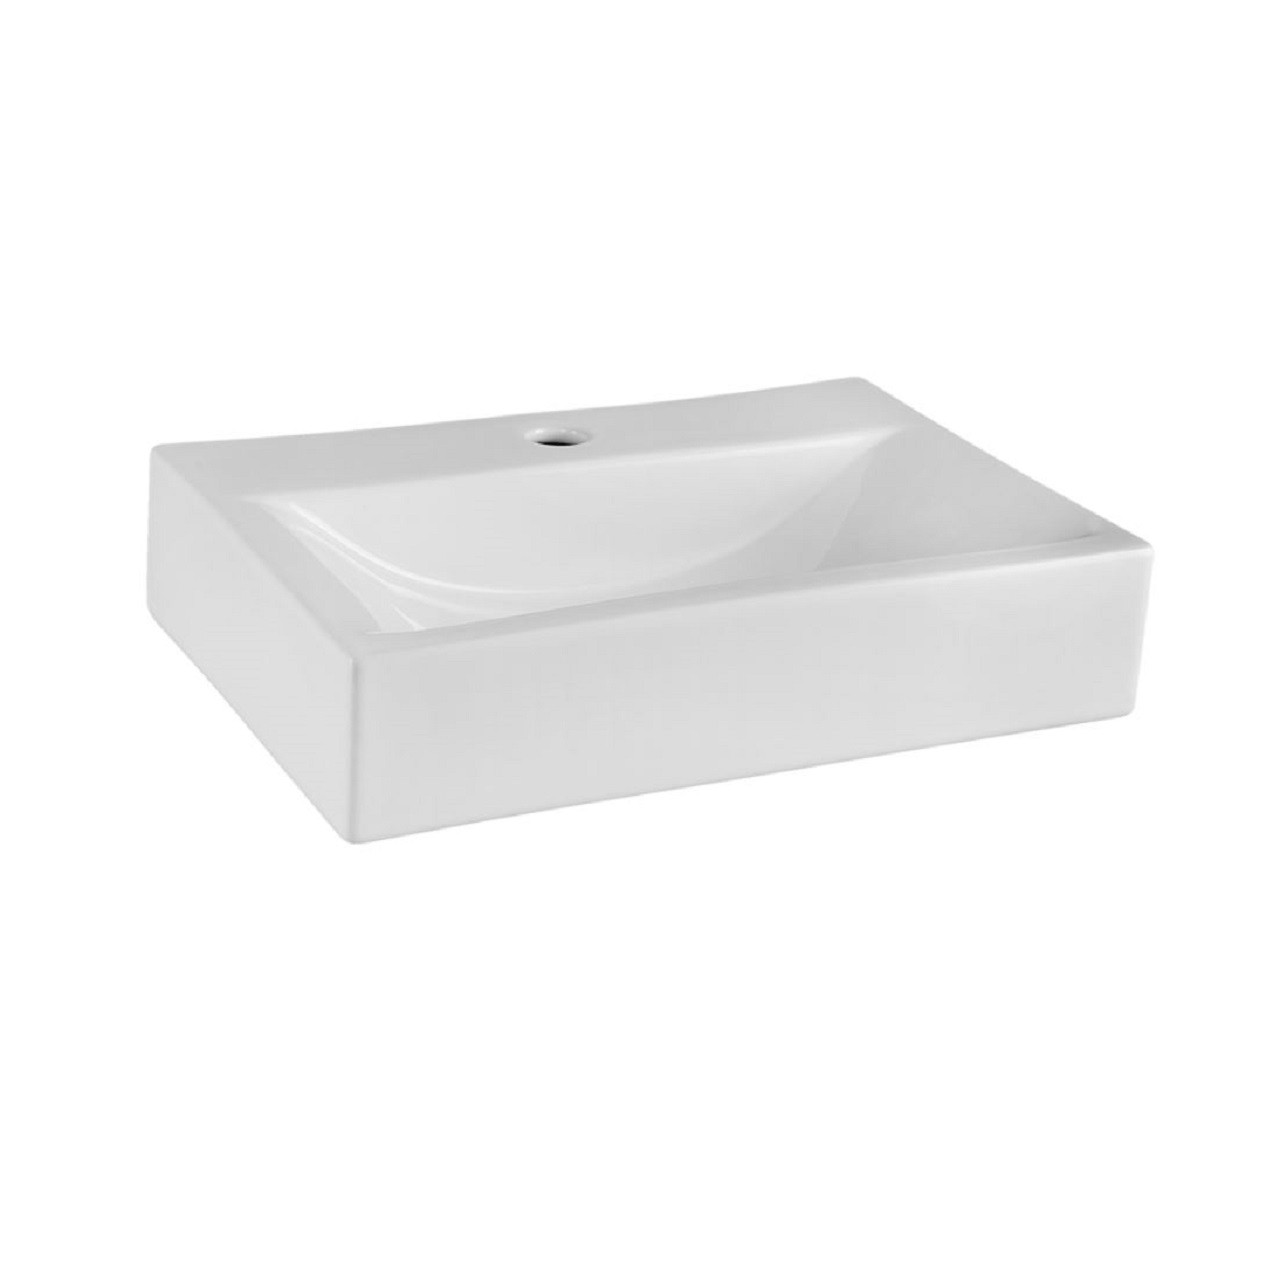 Nuie Cubix Washstand 450mm x 320mm Counter Top Basin - NBV002